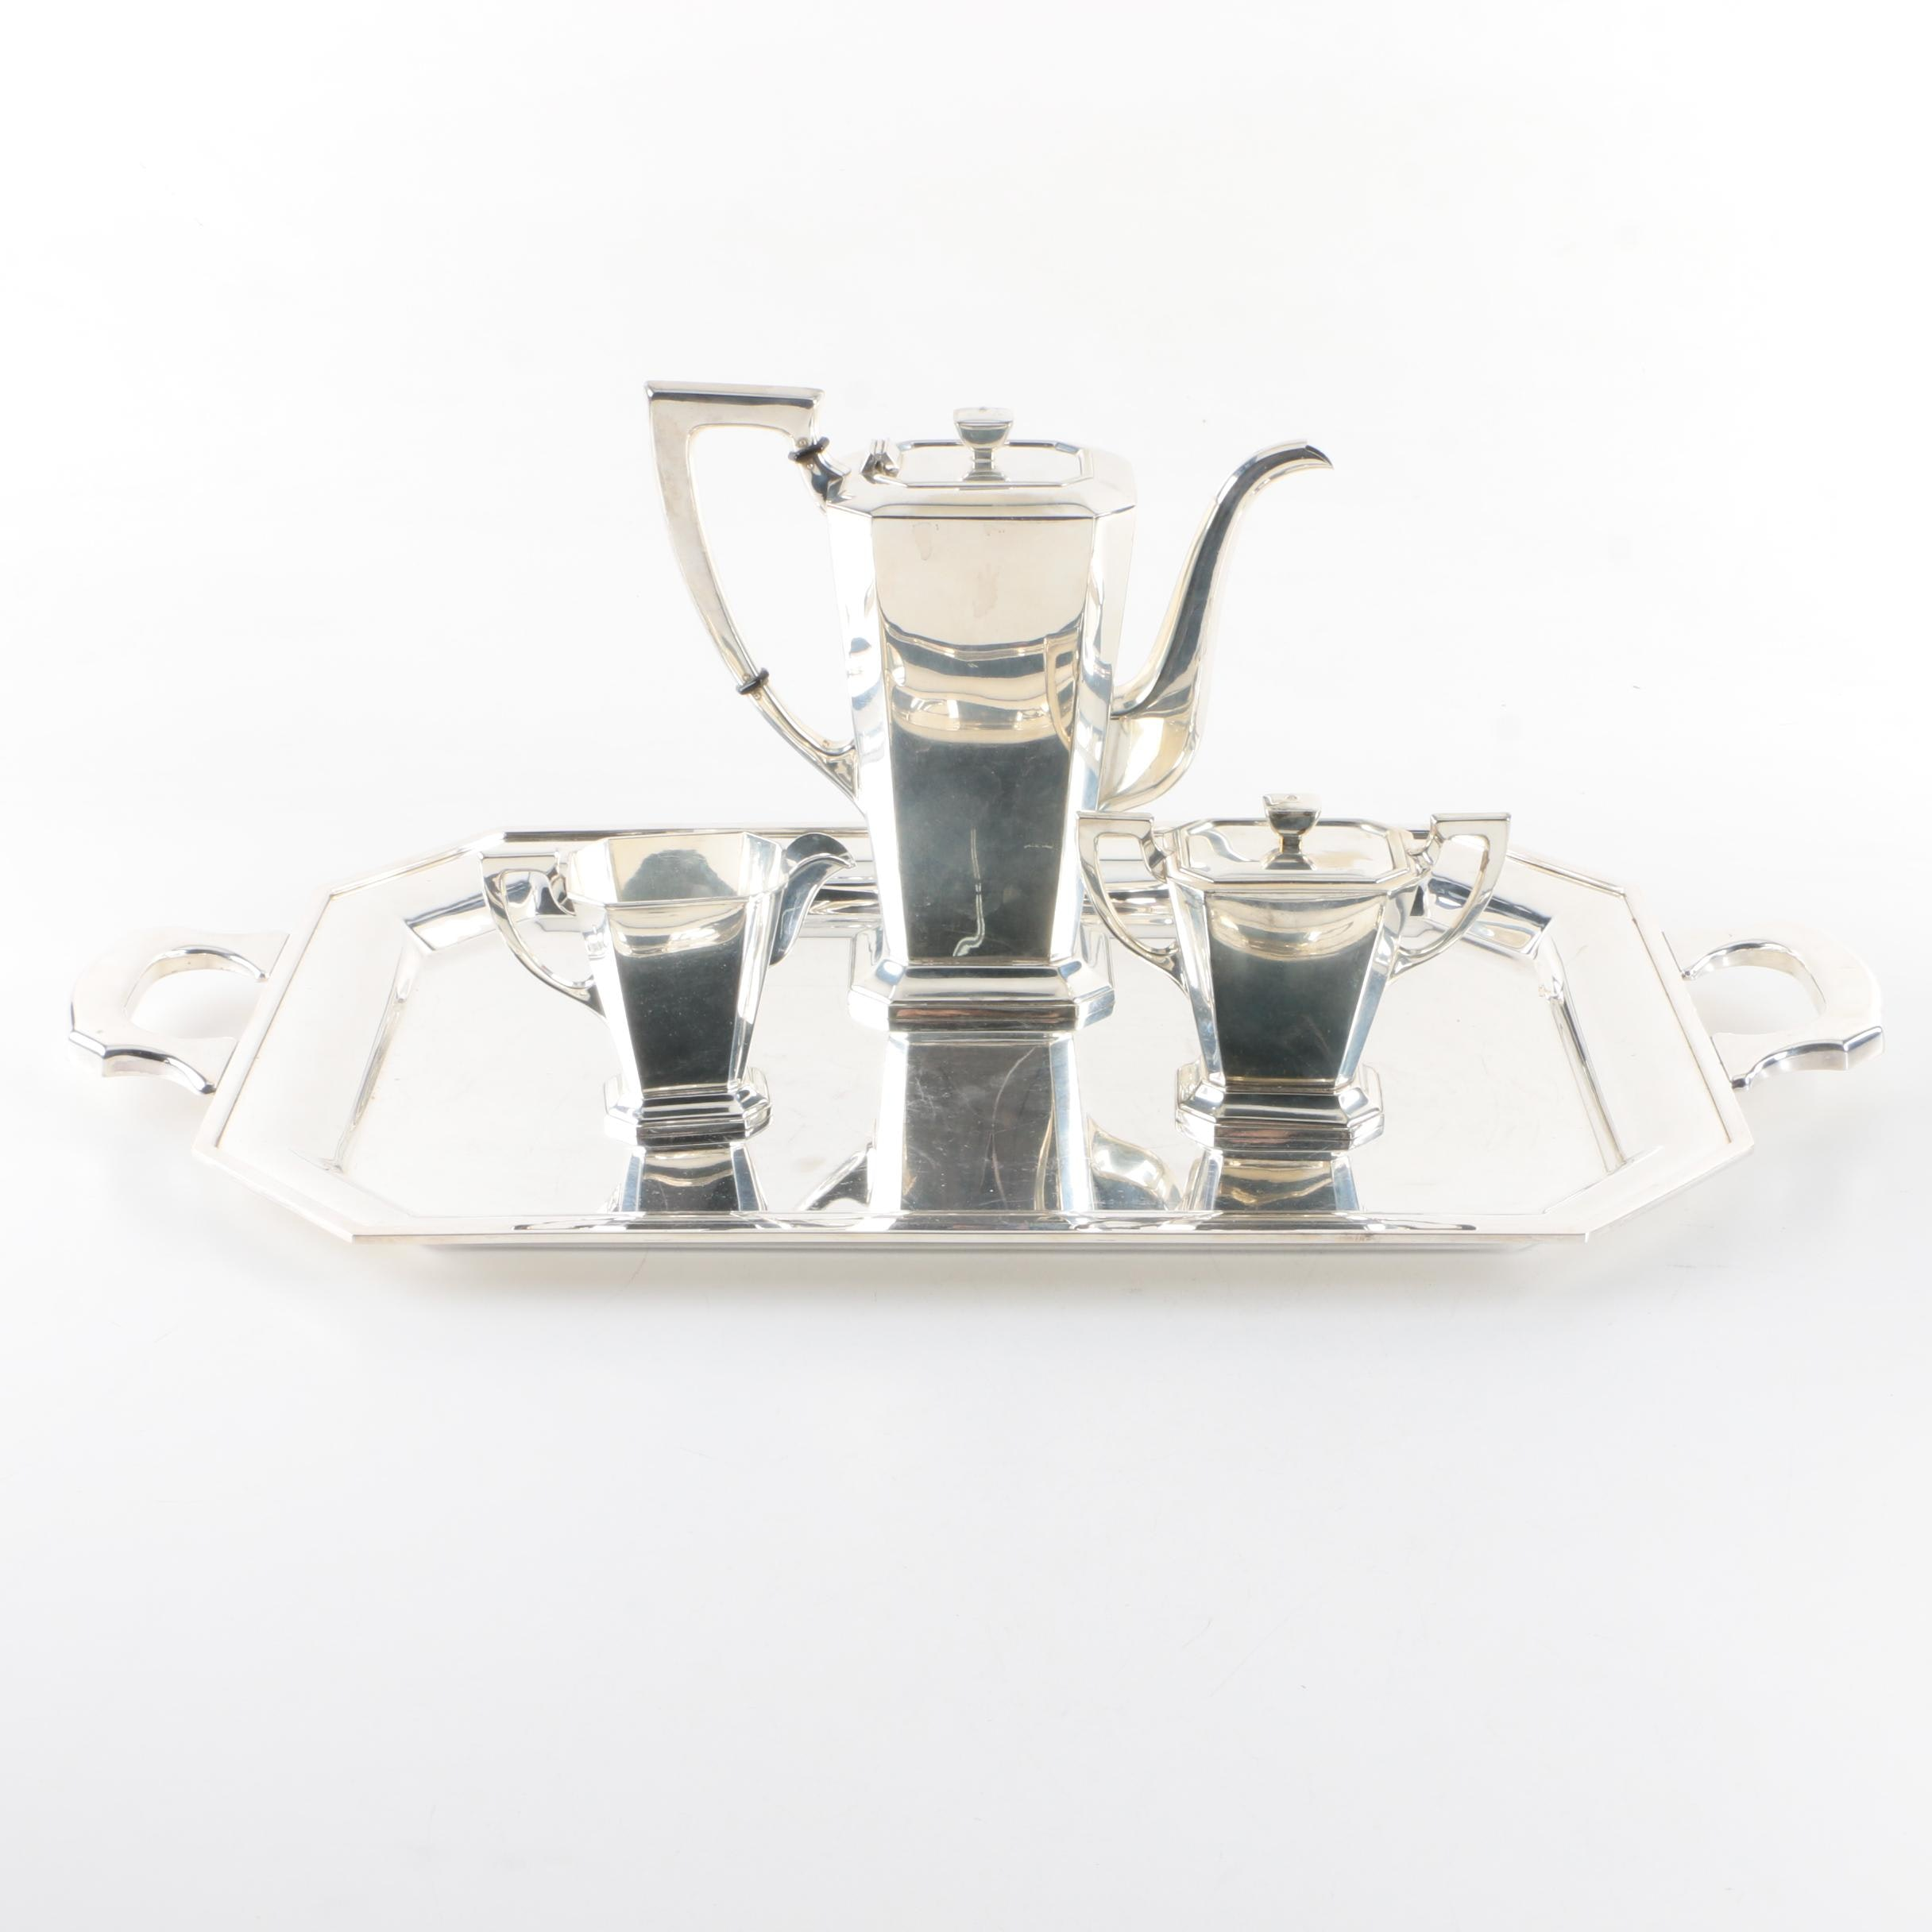 Silver-Plated Art Deco Style Coffee Service with Tray